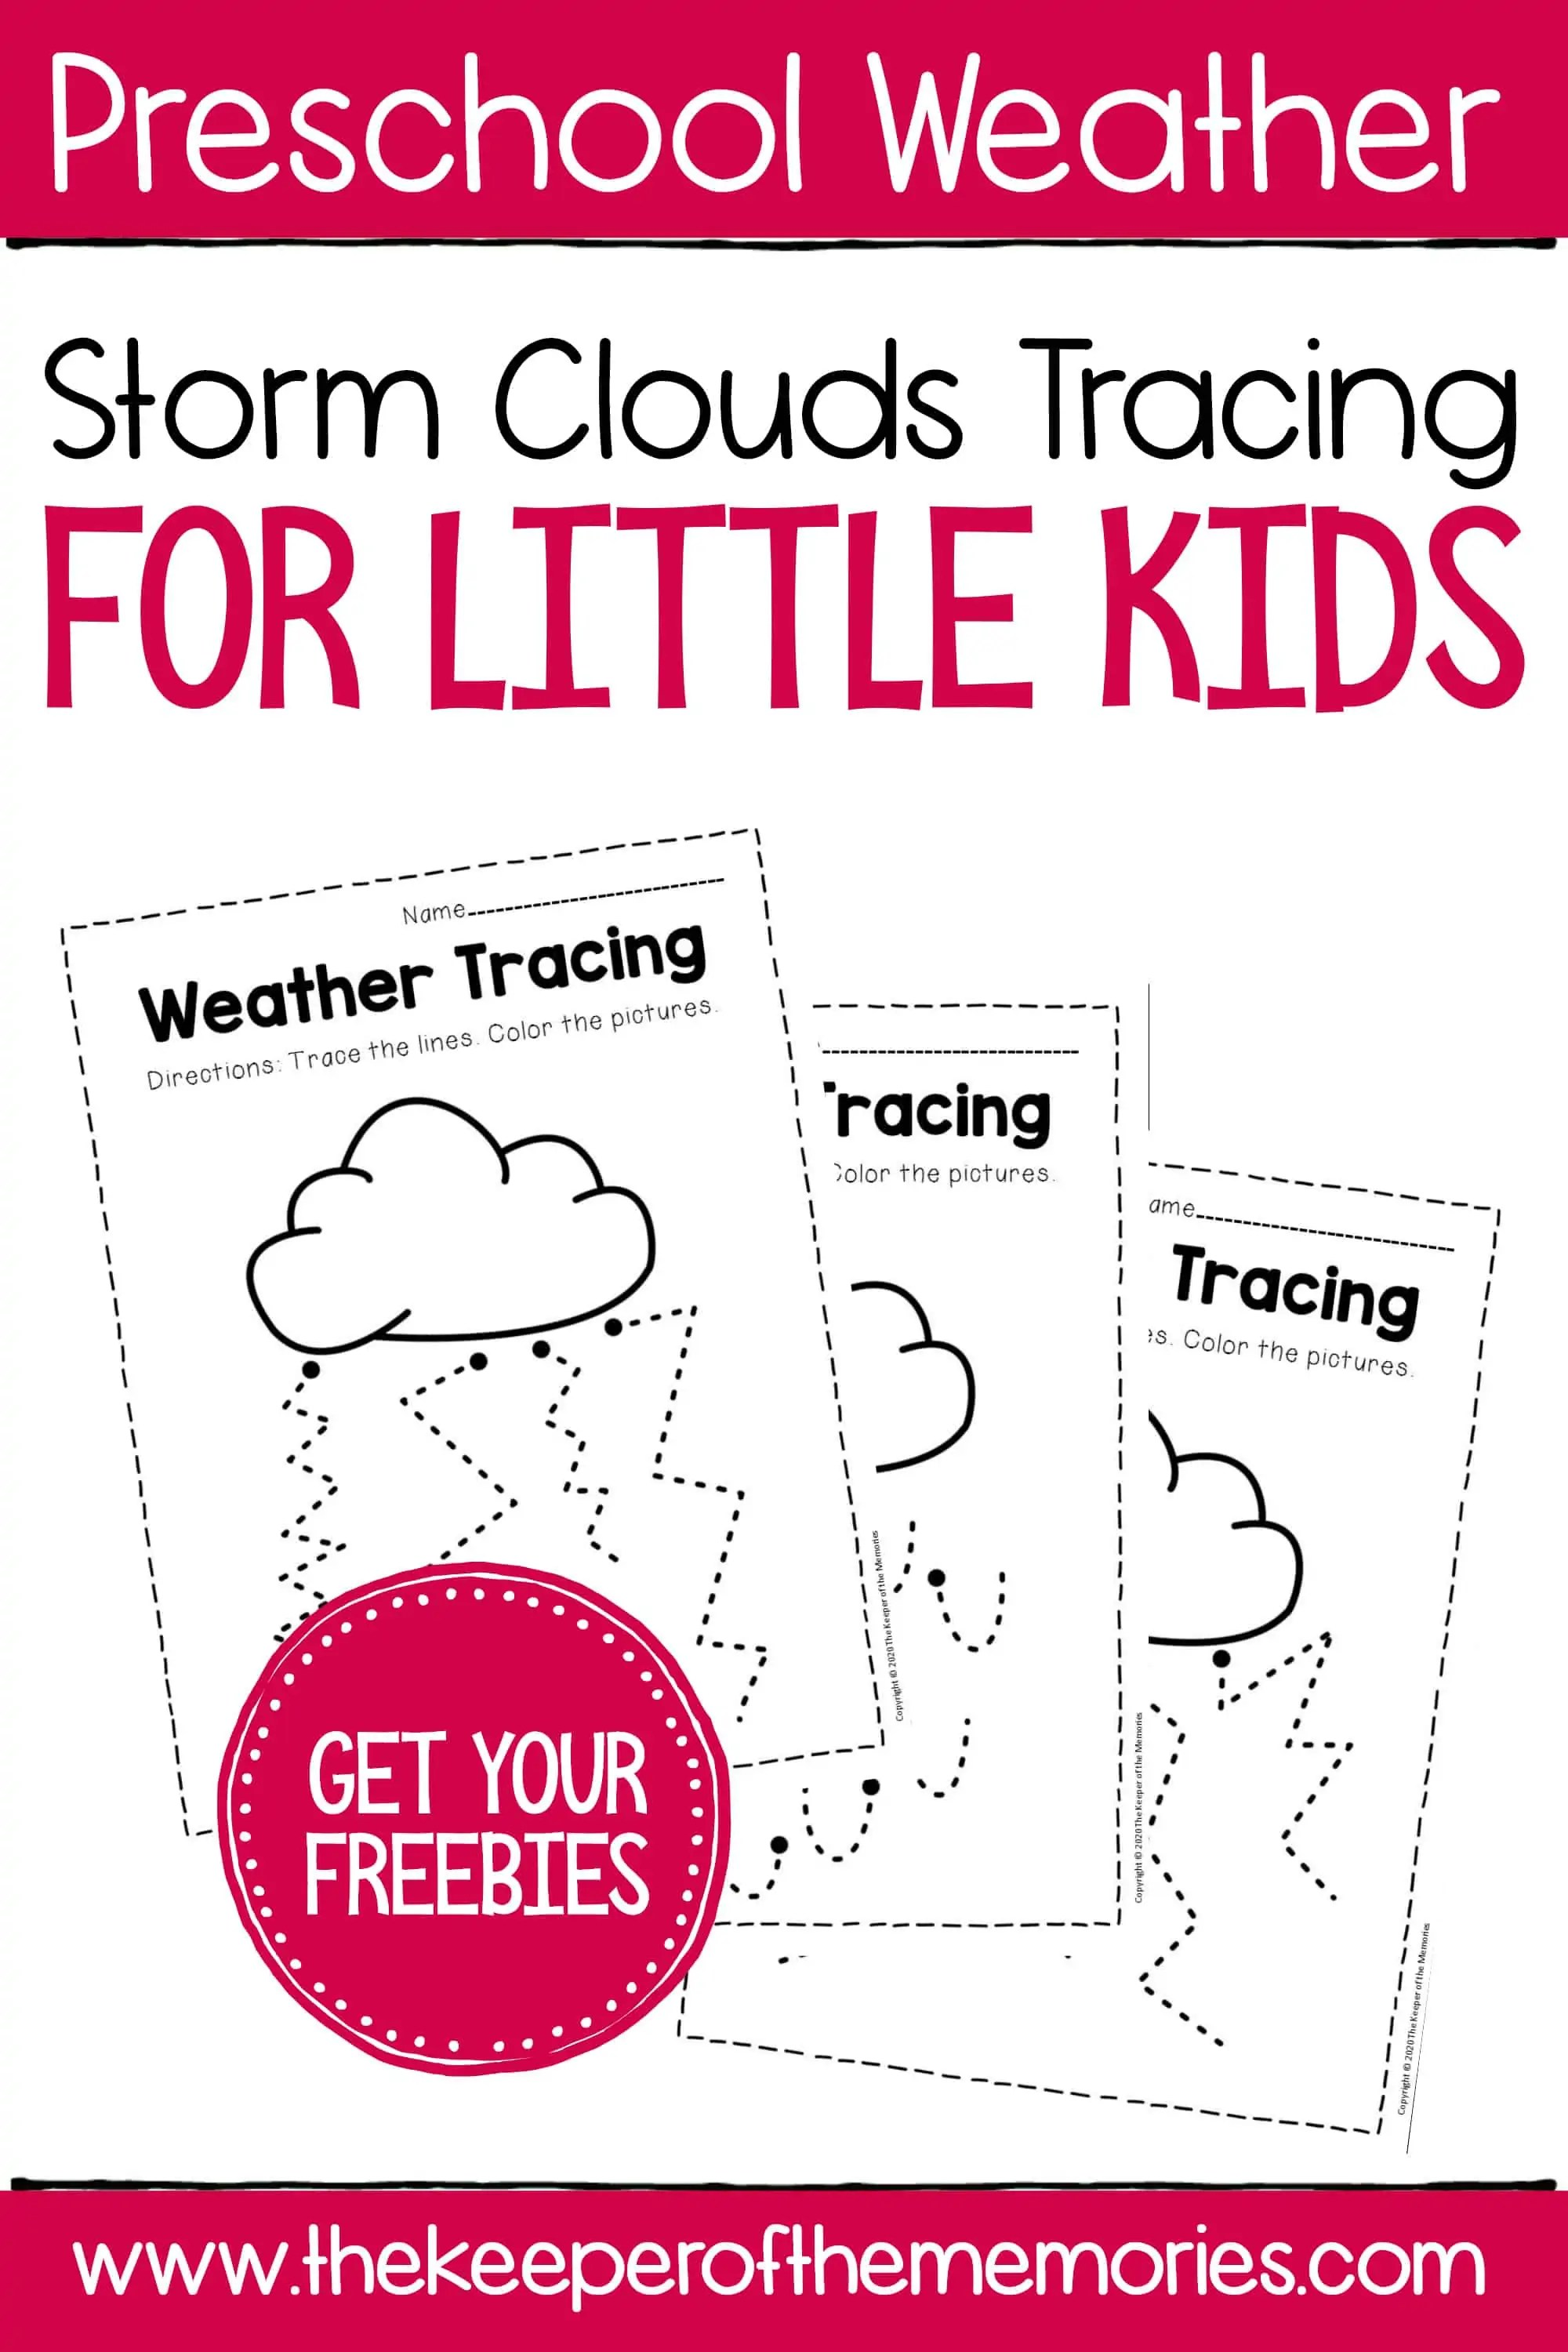 Free Printable Storm Clouds Tracing For Little Kids